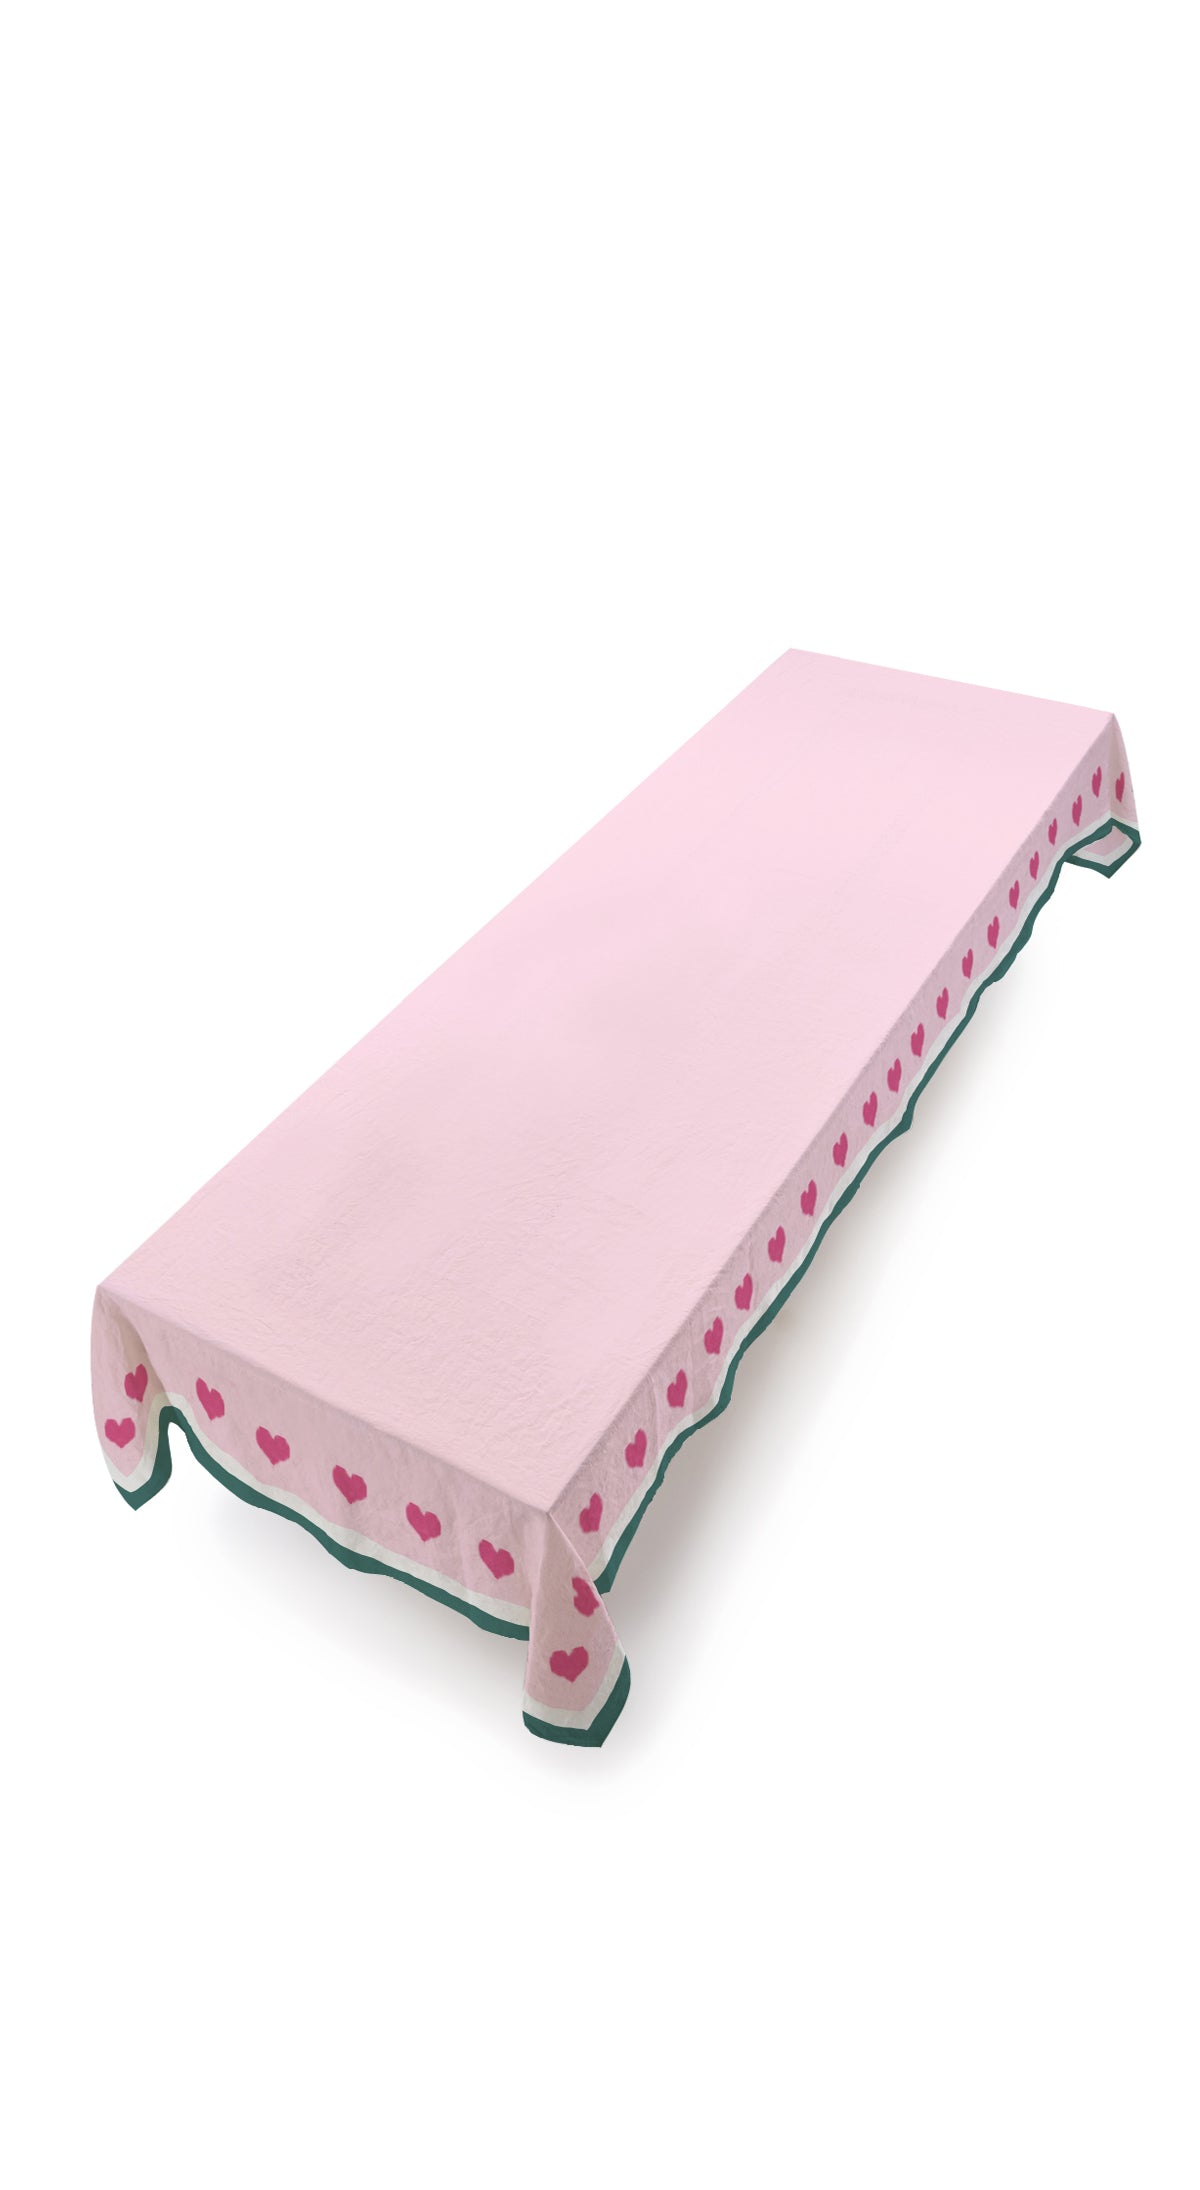 S&B x Lisou Heart Linen Tablecloth in Petal Pink and Forest Green